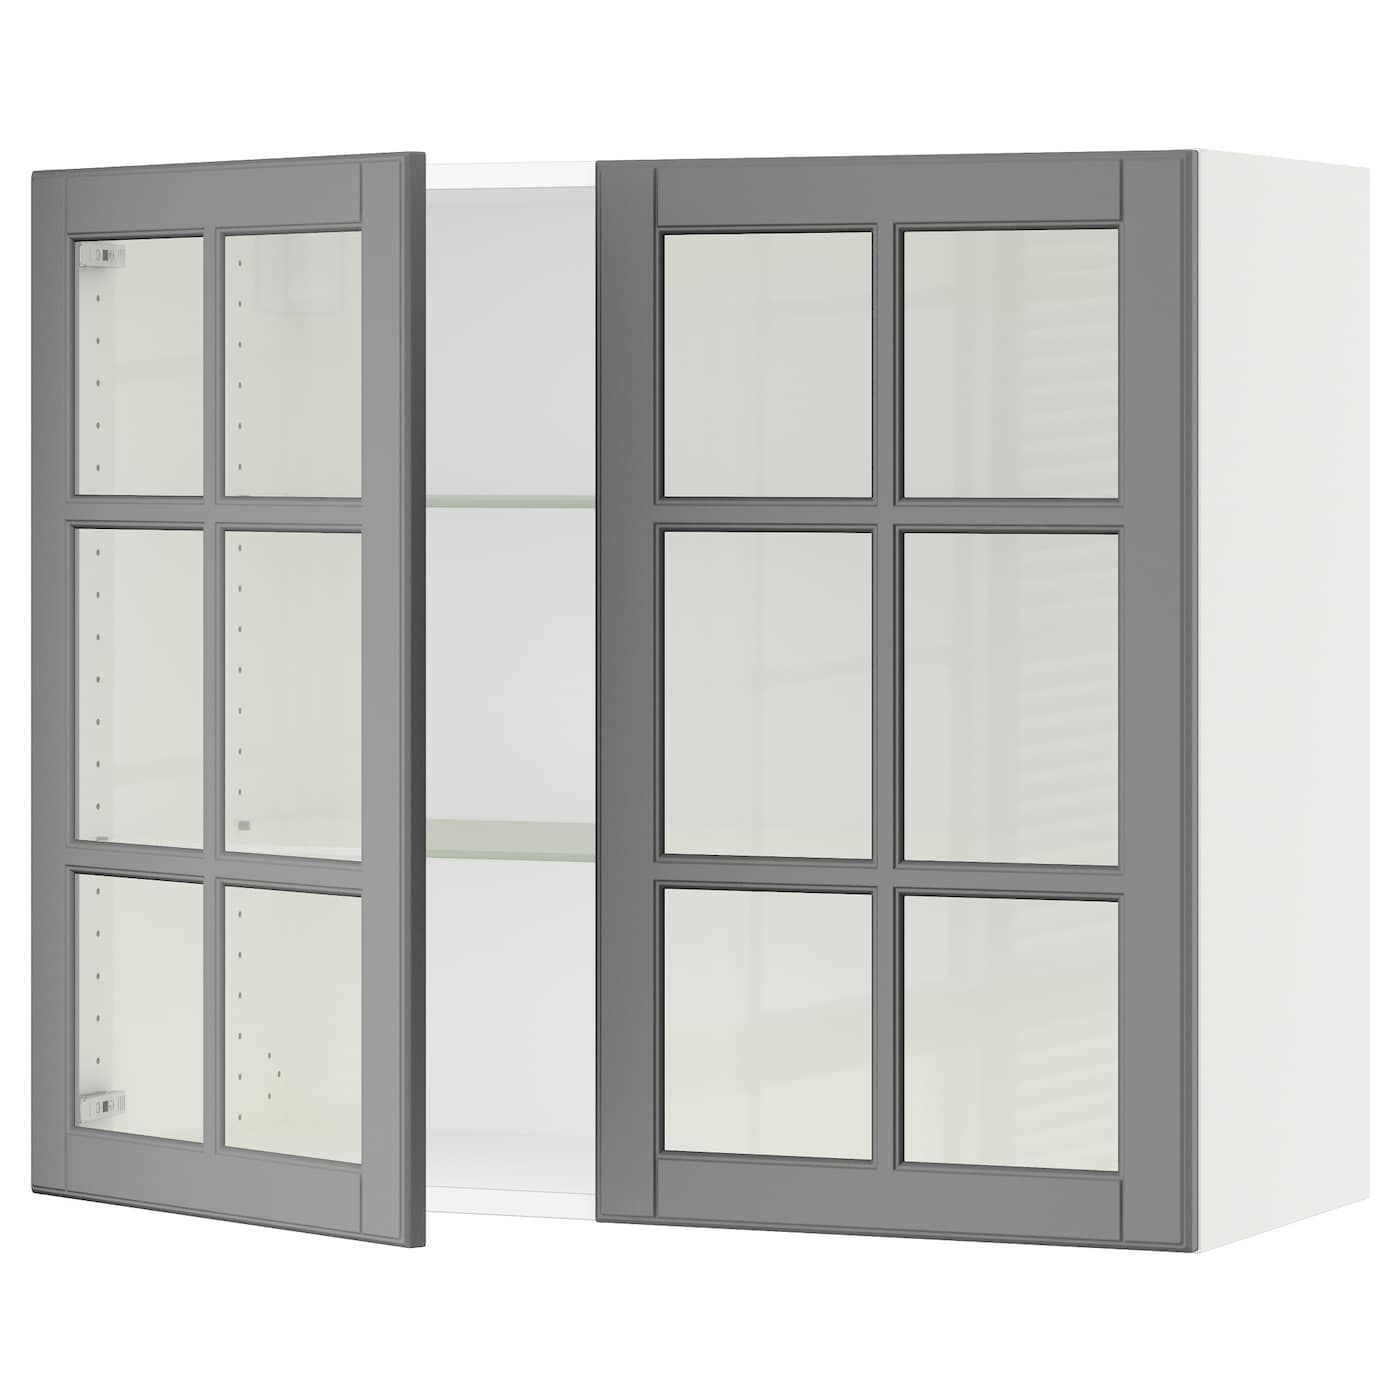 Ikea Sektion White Wall Cabinet With 2 Glass Doors Frame Colour Wall Cabinet Glass Cabinet Doors Glass Door